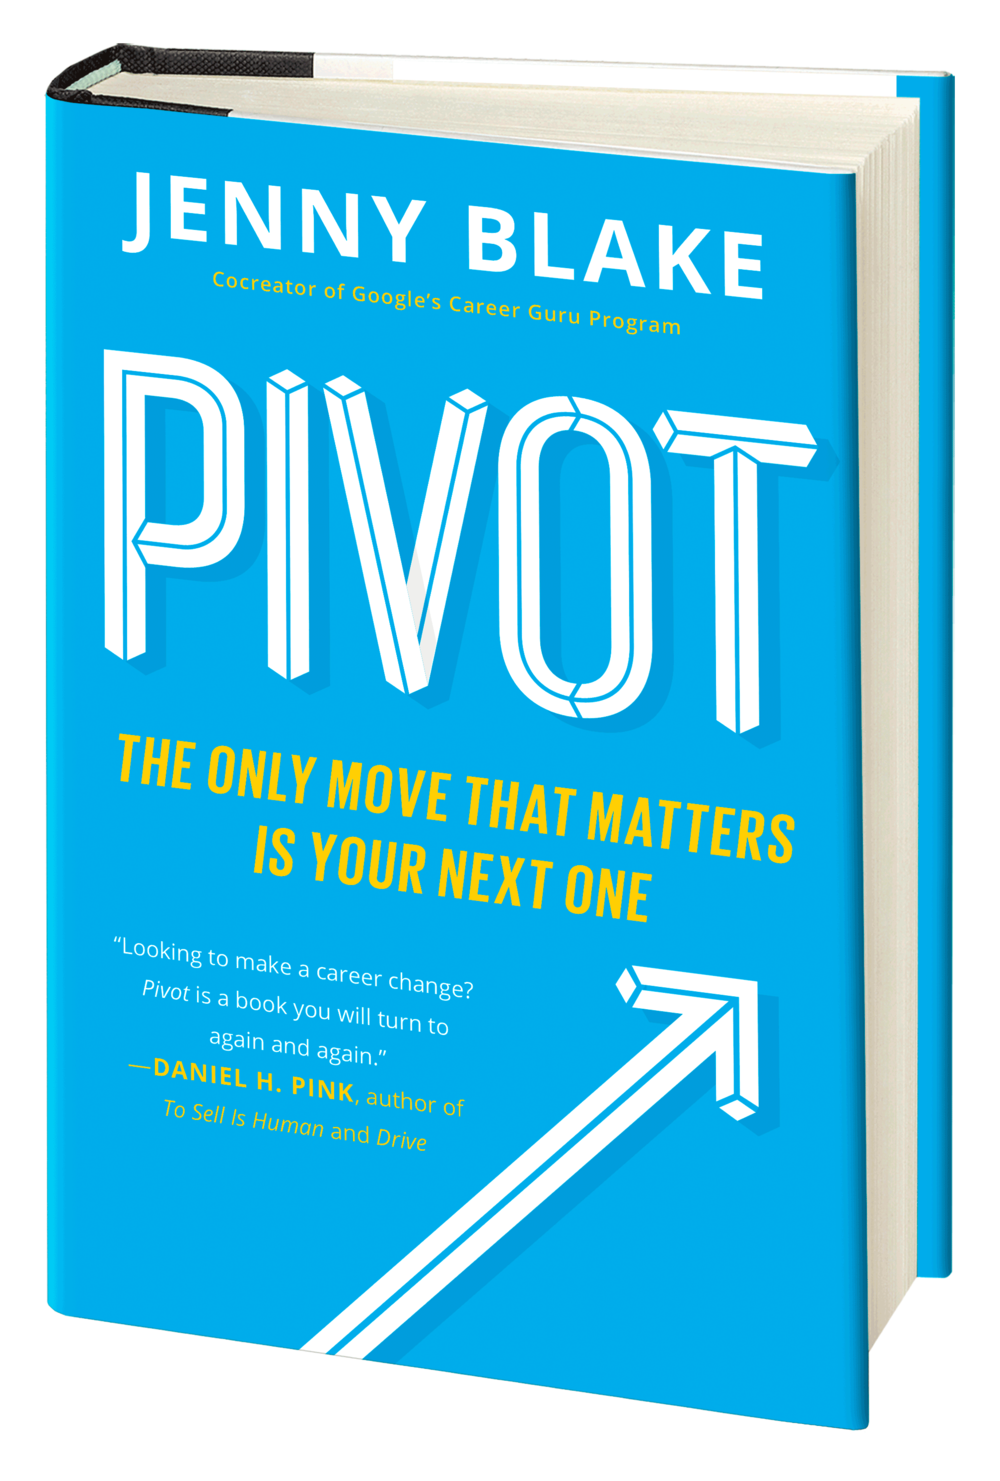 Pre-Order by Sept. 6 to get a signed bookplate, early access to the Pivot Toolkit, $500 in courses, and a whole lot more :)